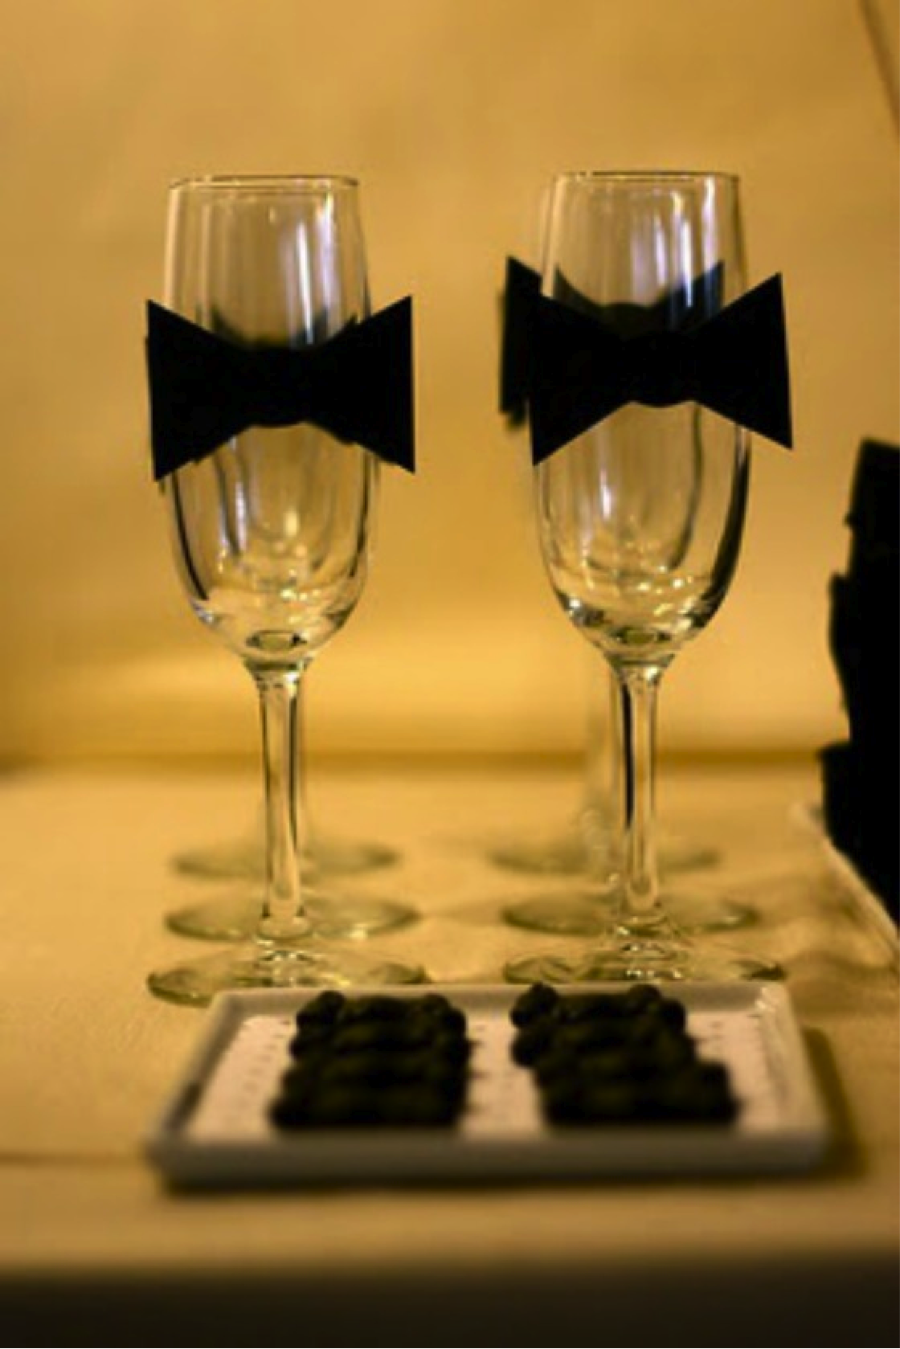 {Via} If you're looking to celebrate in style and have some cocktails like Matthew McConhaughey, Sandra Bullock, and Brad Pitt, put on your DIY hat and make some bow tie champagne glasses.